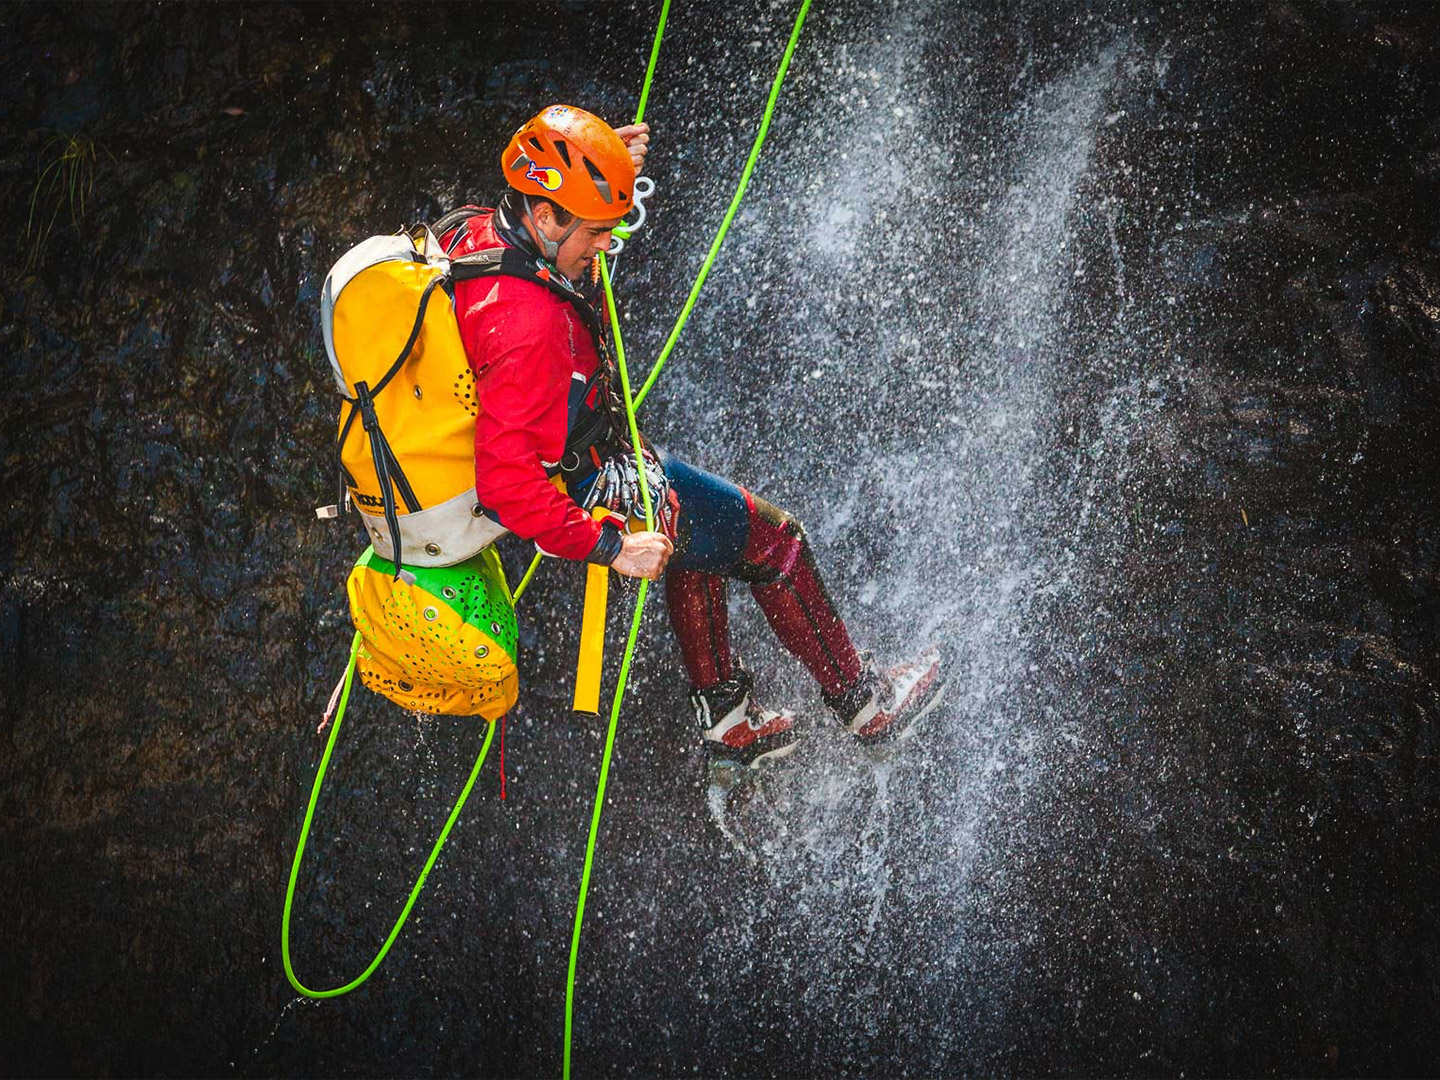 meeting-canyoning-madeira-2018-featured-image